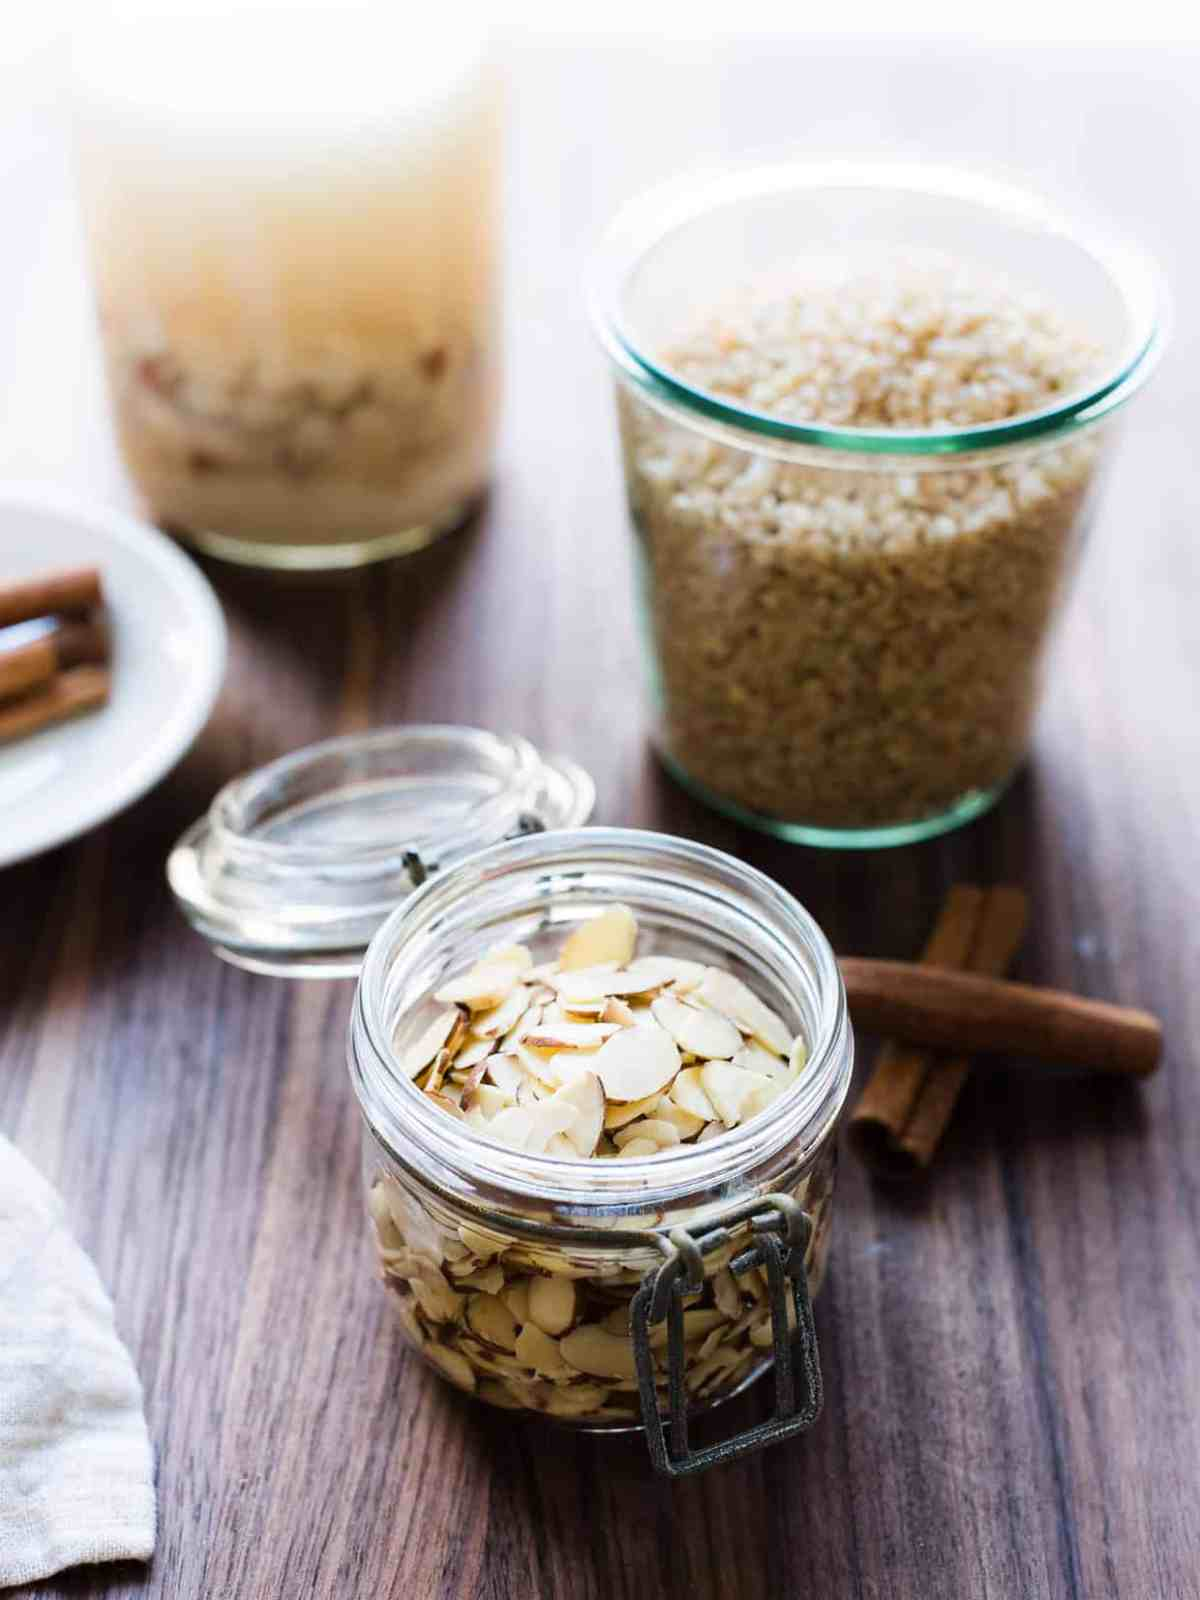 Ingredients for this homemade horchata include almonds, brown rice, cinnamon, water, and milk.